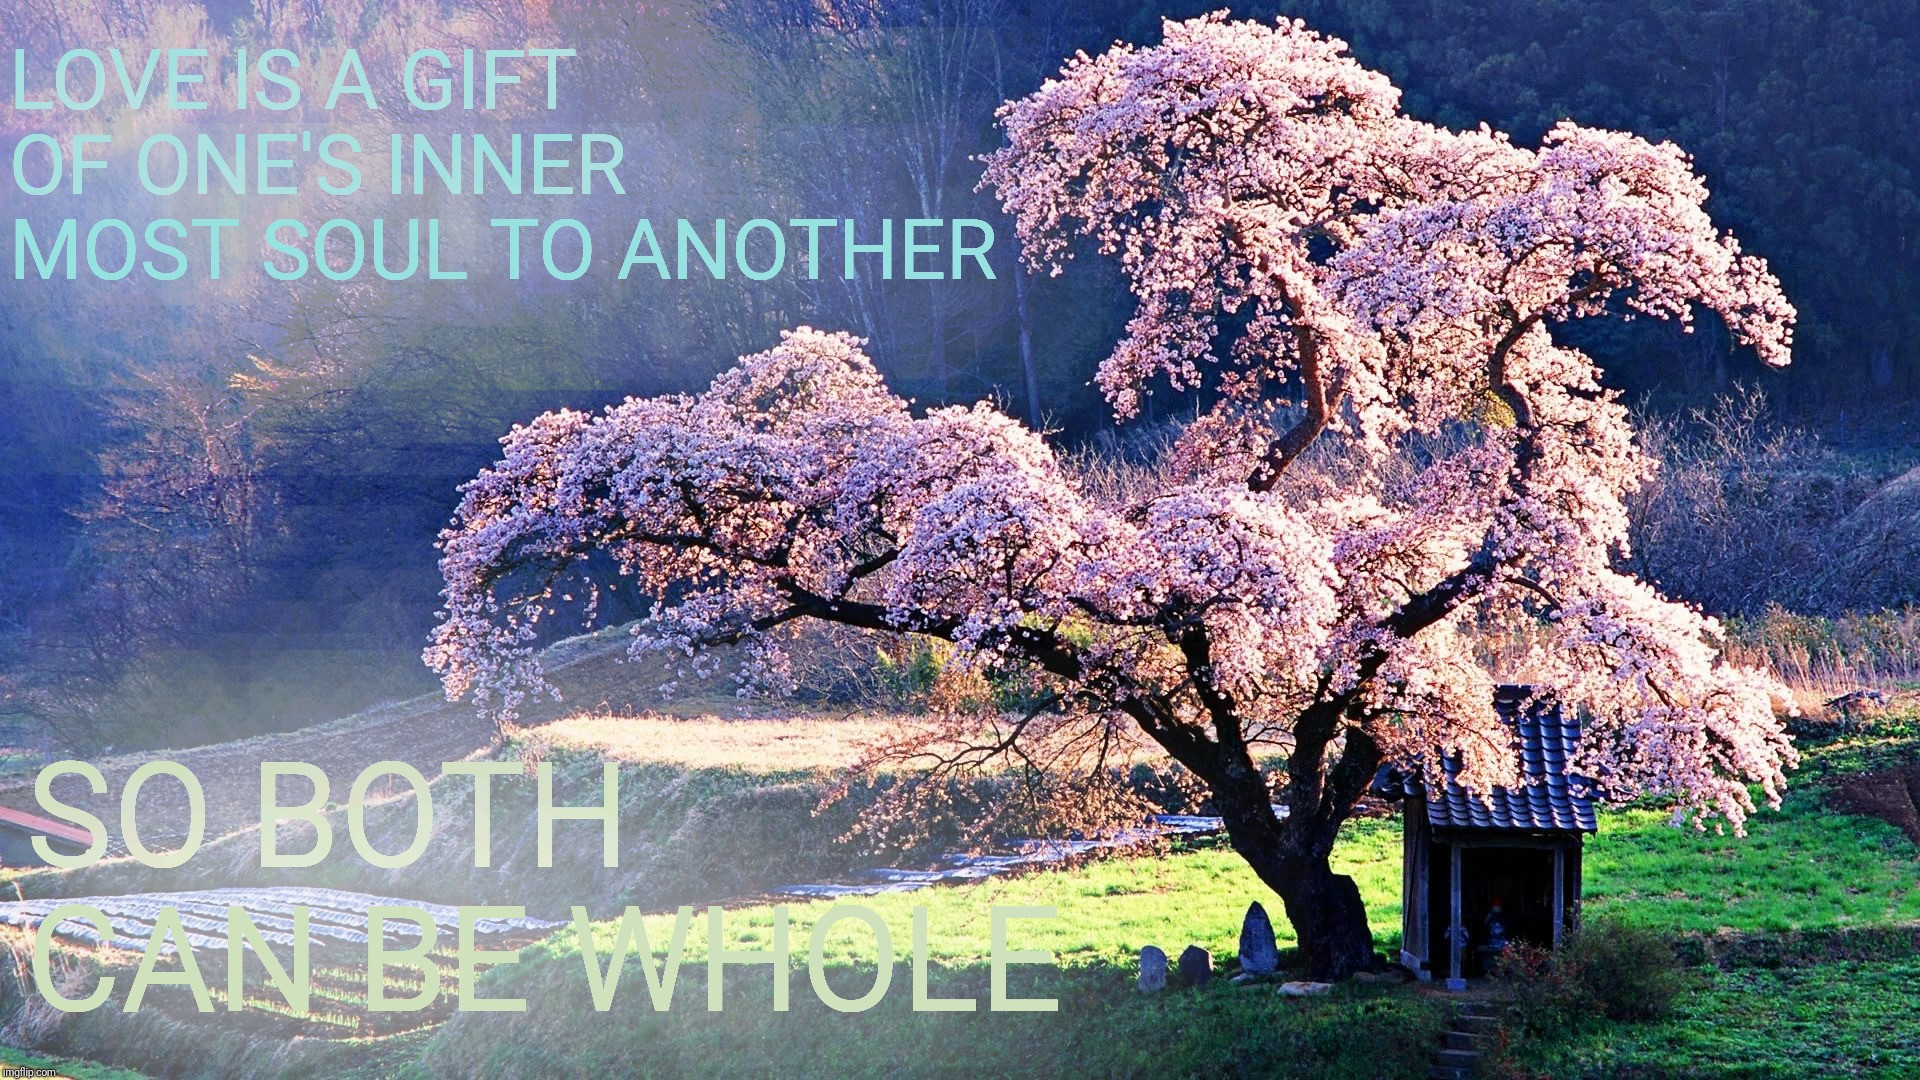 LOVE IS A GIFT OF ONE'S INNER MOST SOUL TO ANOTHER SO BOTH CAN BE WHOLE | made w/ Imgflip meme maker